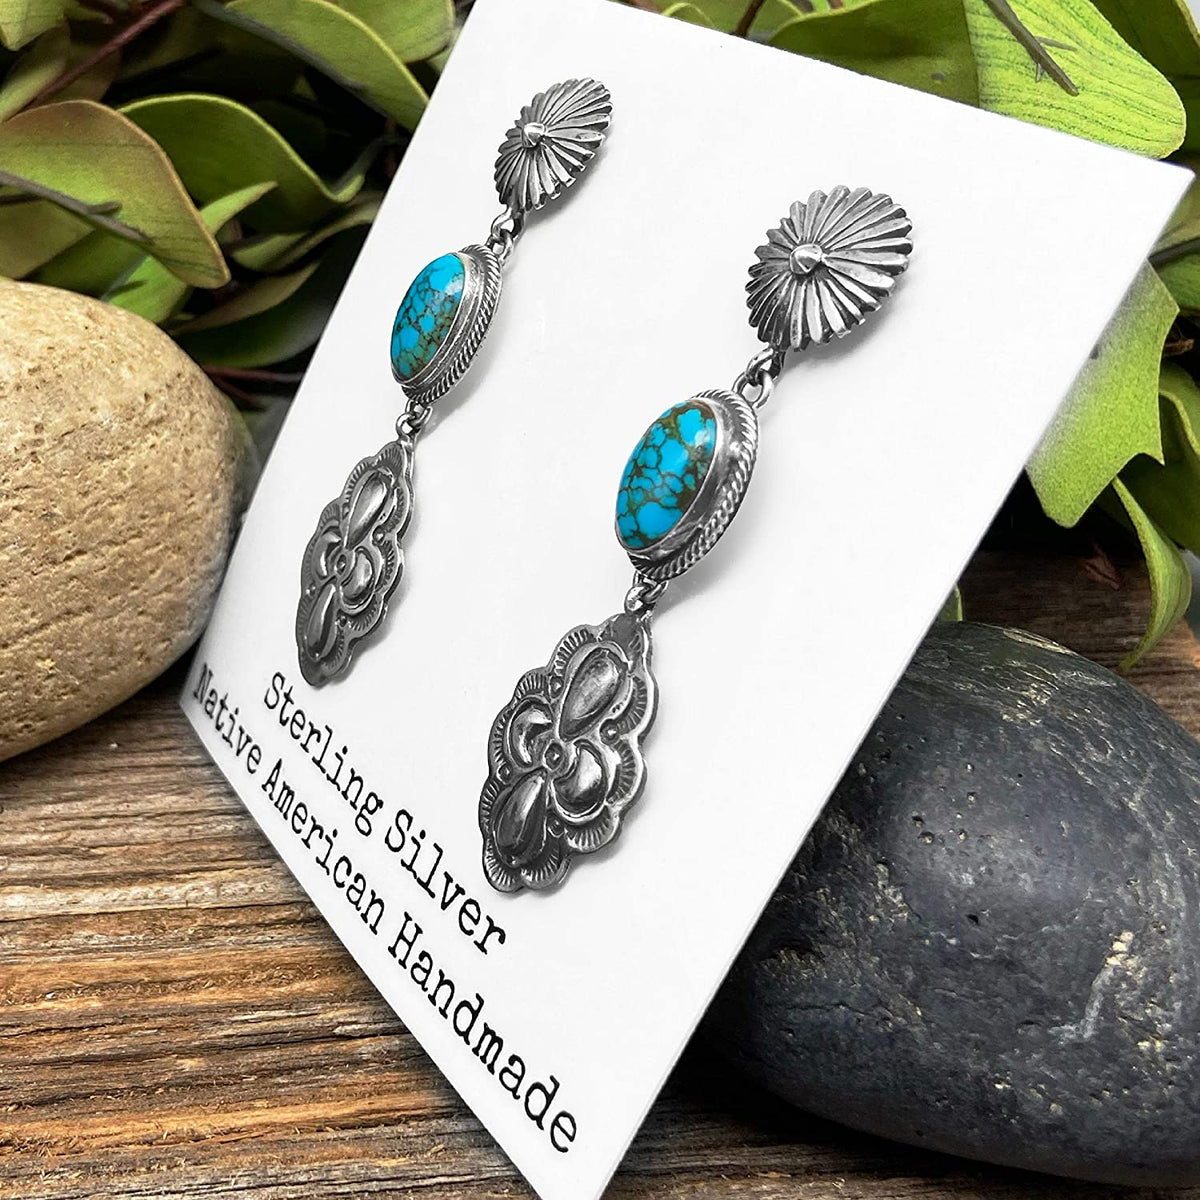 Genuine Kingman Turquoise Statement Earrings, Oxidized Sterling Silver, Authentic Navajo Native American USA Handmade, Artist Signed, Nickle Free, Southwest Vintage Style